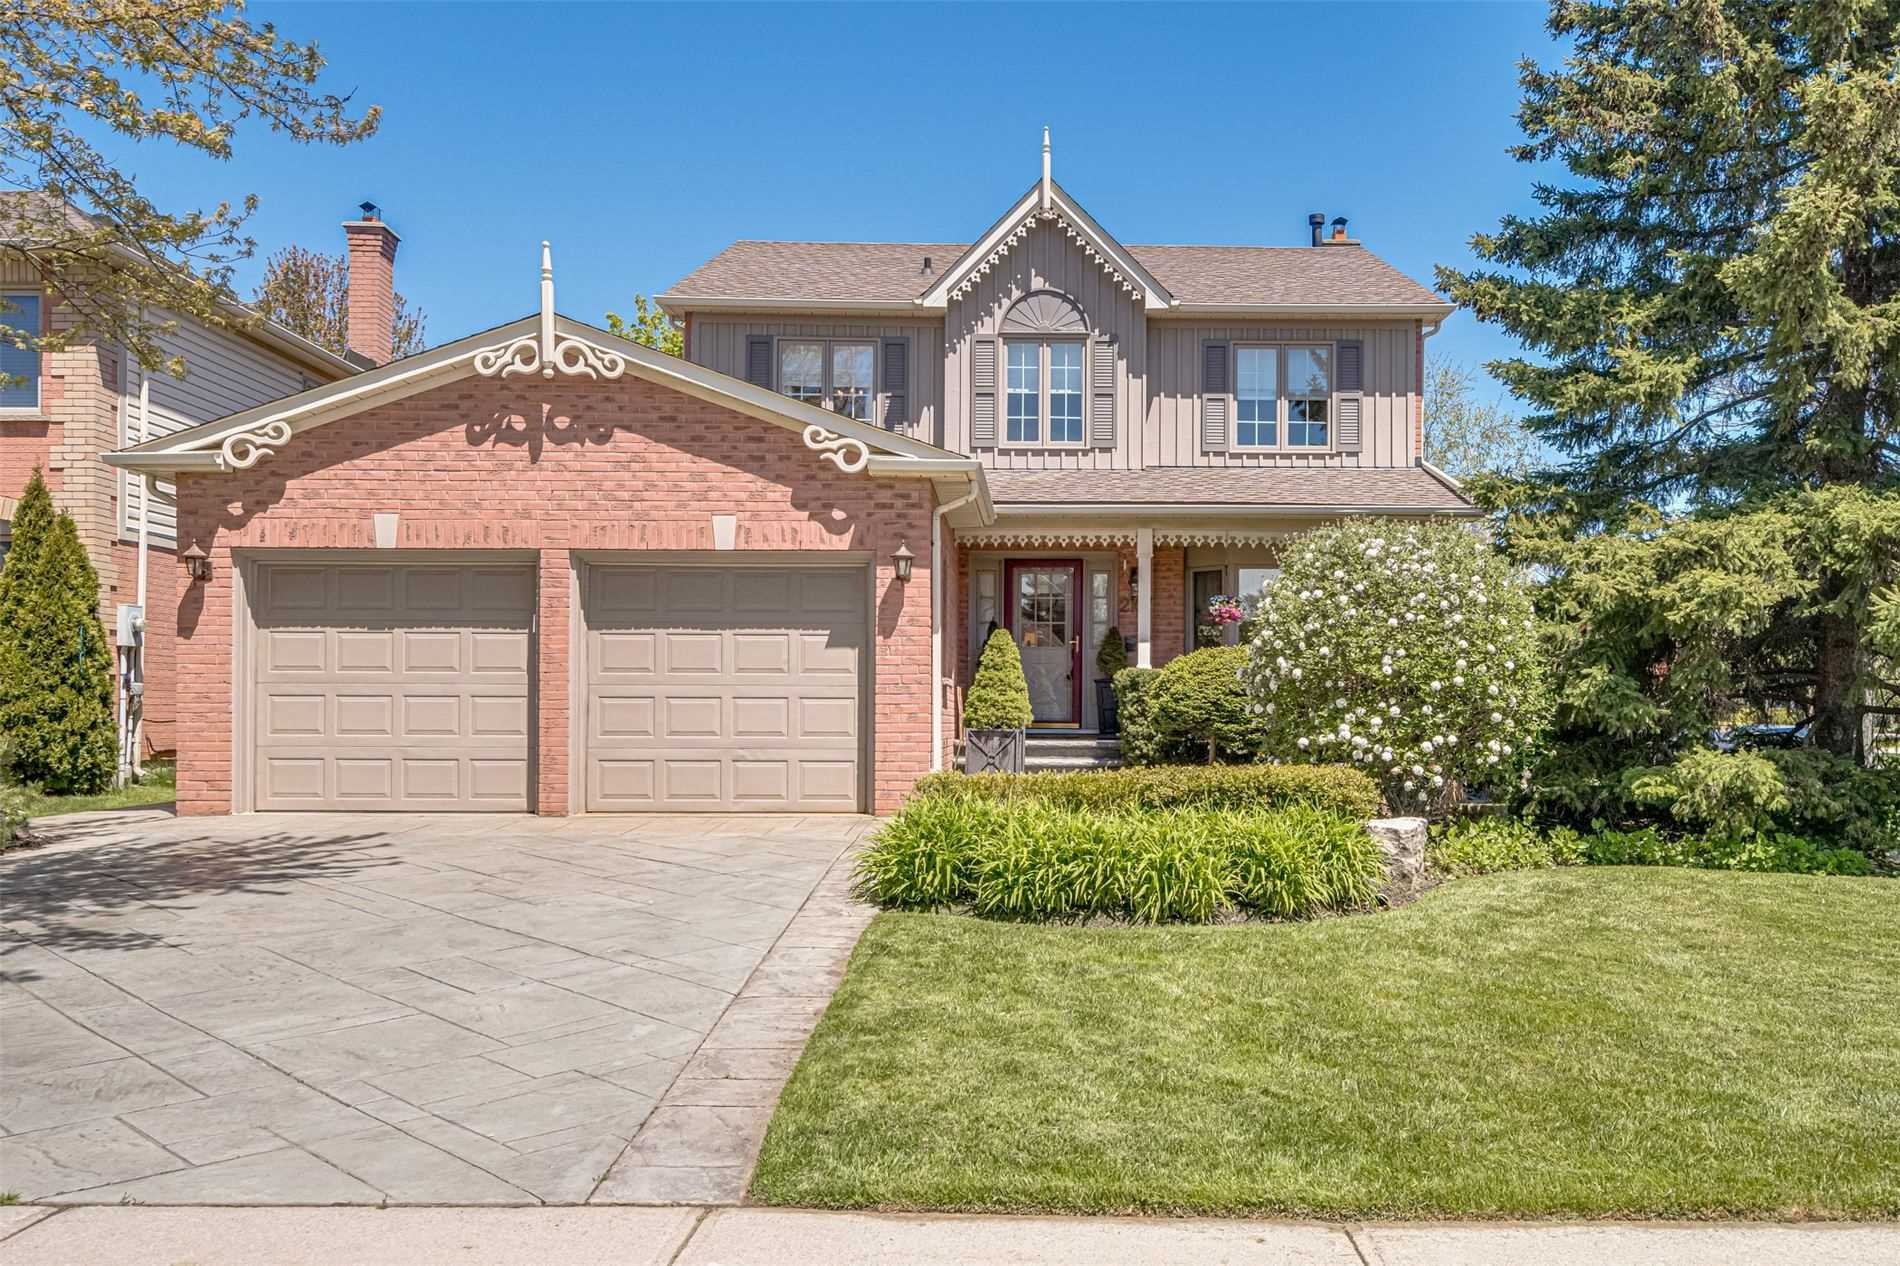 2107 Country Club Dr, Burlington, L7M4A4, 3 Bedrooms Bedrooms, ,4 BathroomsBathrooms,Detached,For Sale,Country Club,W4768228